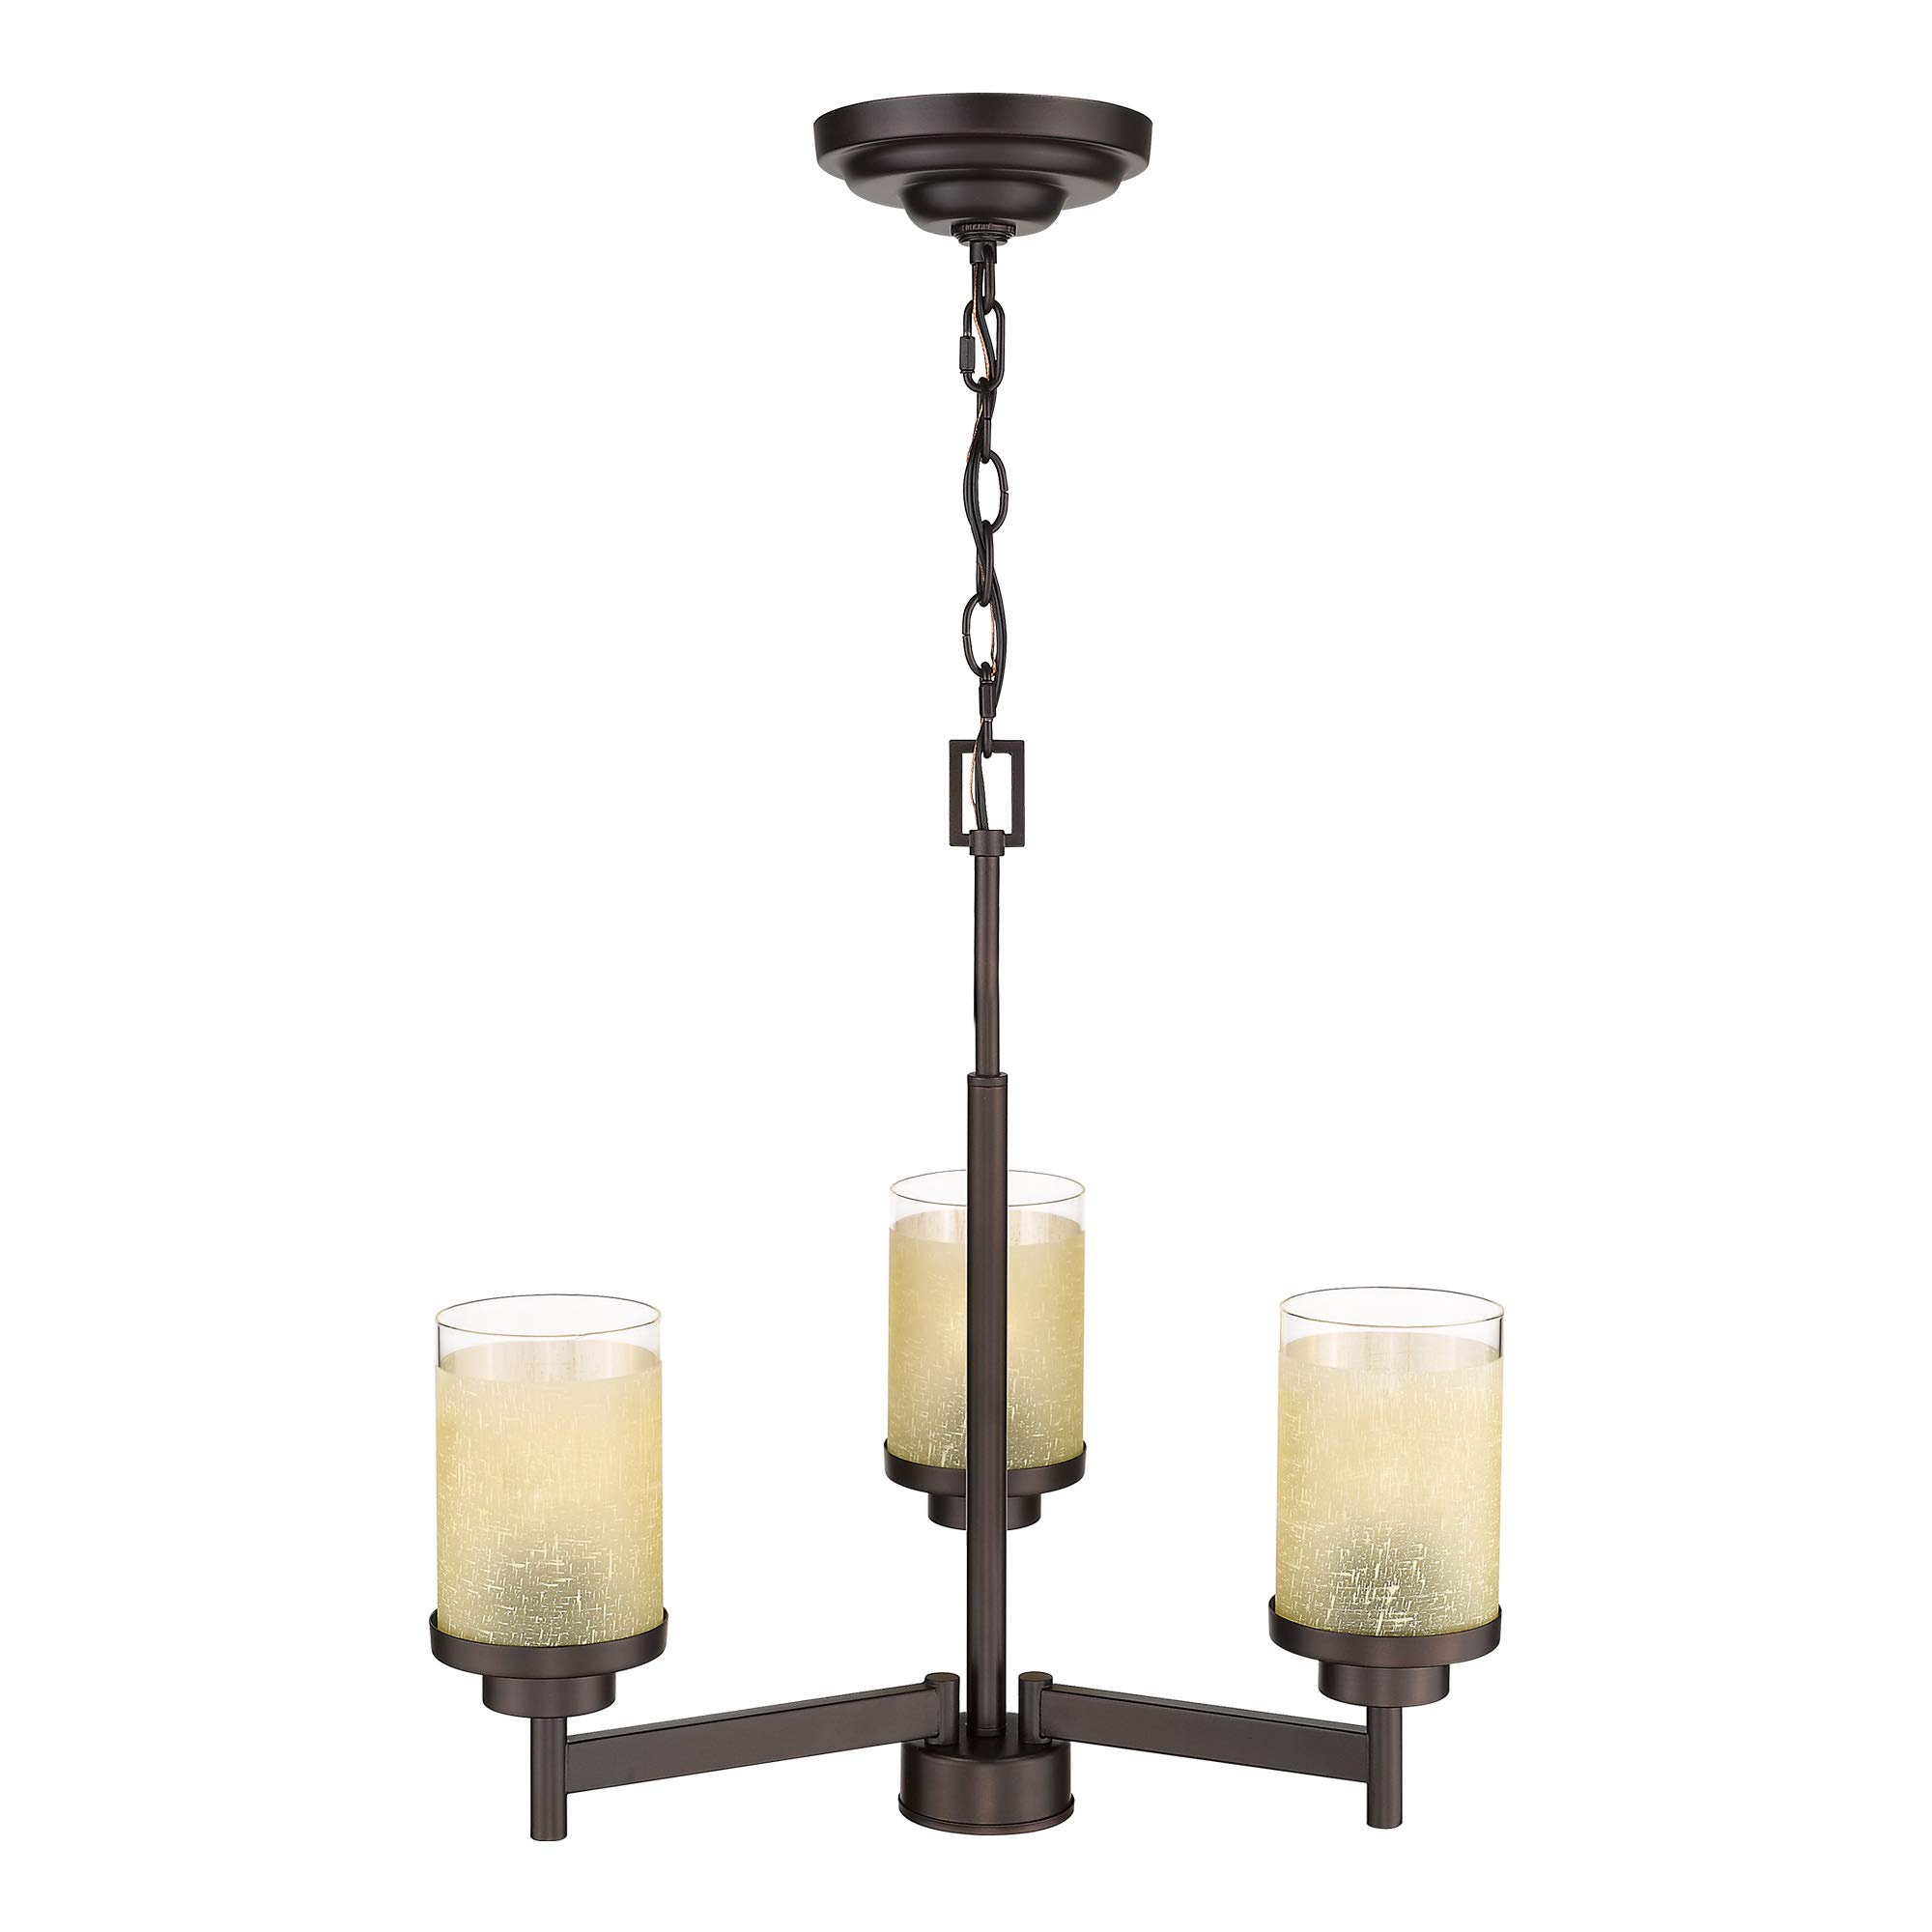 Jazava Modern Kitchen Chandelier, 3-Light Rustic Kitchen Island Lighting, Oil Rubbed Bronze with Yellow Linen Frosted and Clear Glass Shades for Farmhouse, Dinning Room, Living Room by JAZAVA